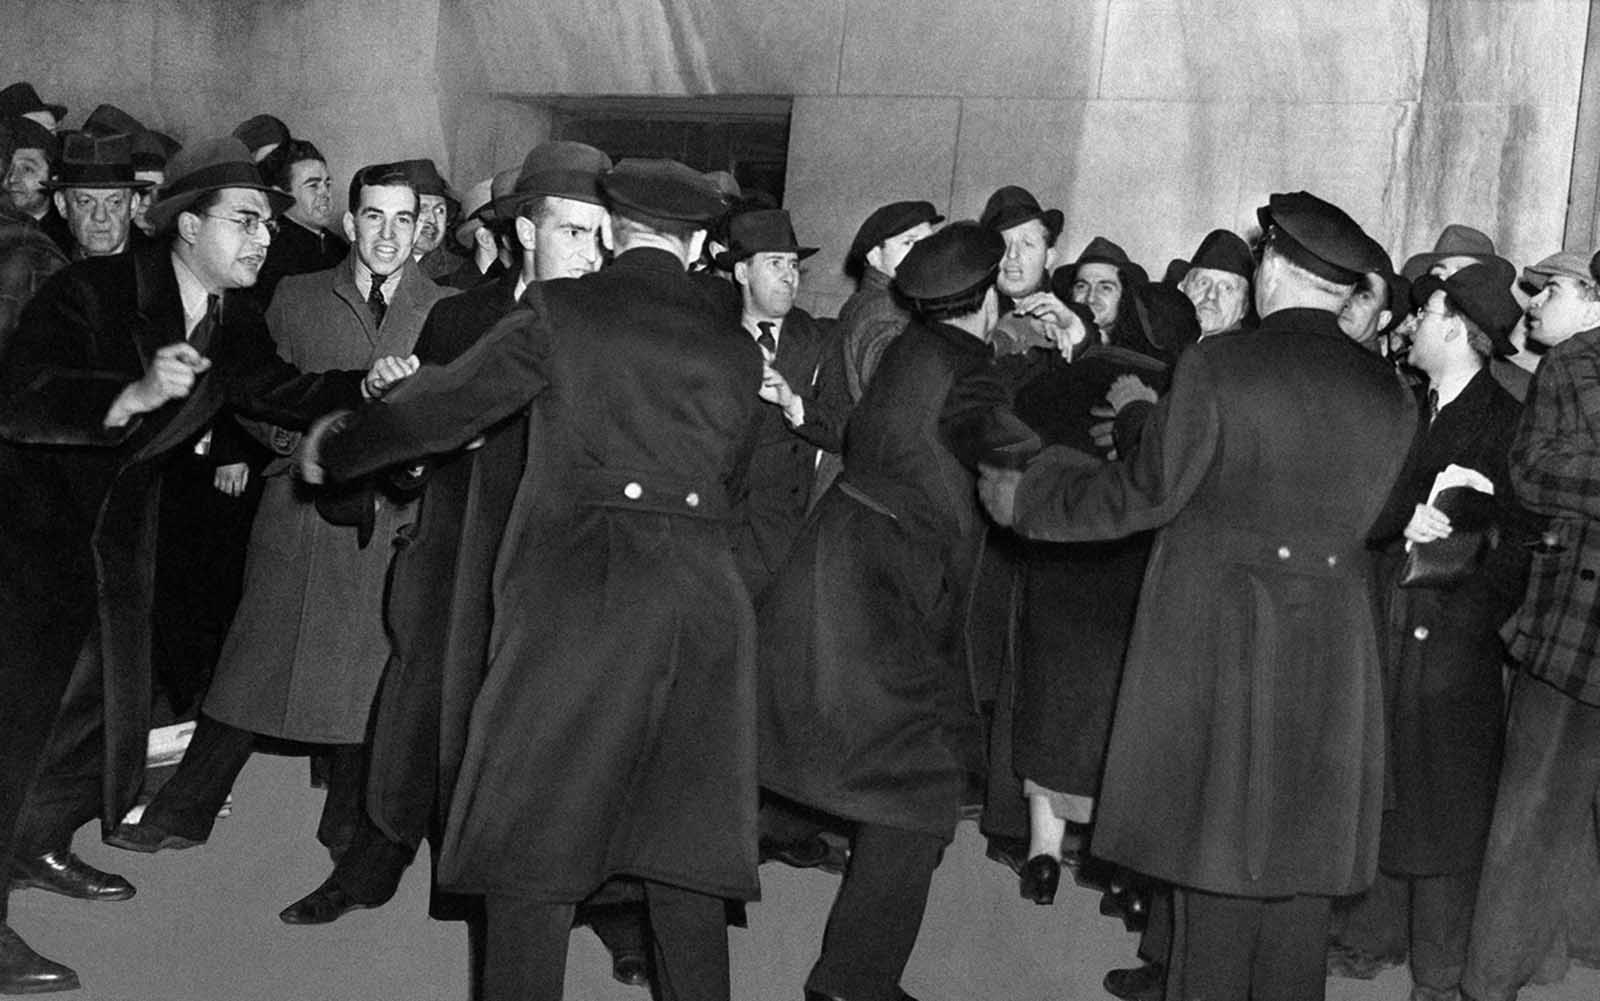 Original Caption: There's plenty of pushing and shoving as police try to keep streets clear in the immediate vicinity of Madison Square Garden in New York, on February 20, 1939 during a German-American Bund rally which had aroused a storm of protest from anti-Bund forces. There were strict police orders against picketing, and the 1,500 cops on duty in the area were instructed to halt all persons entering the neighborhood with provocative signs.